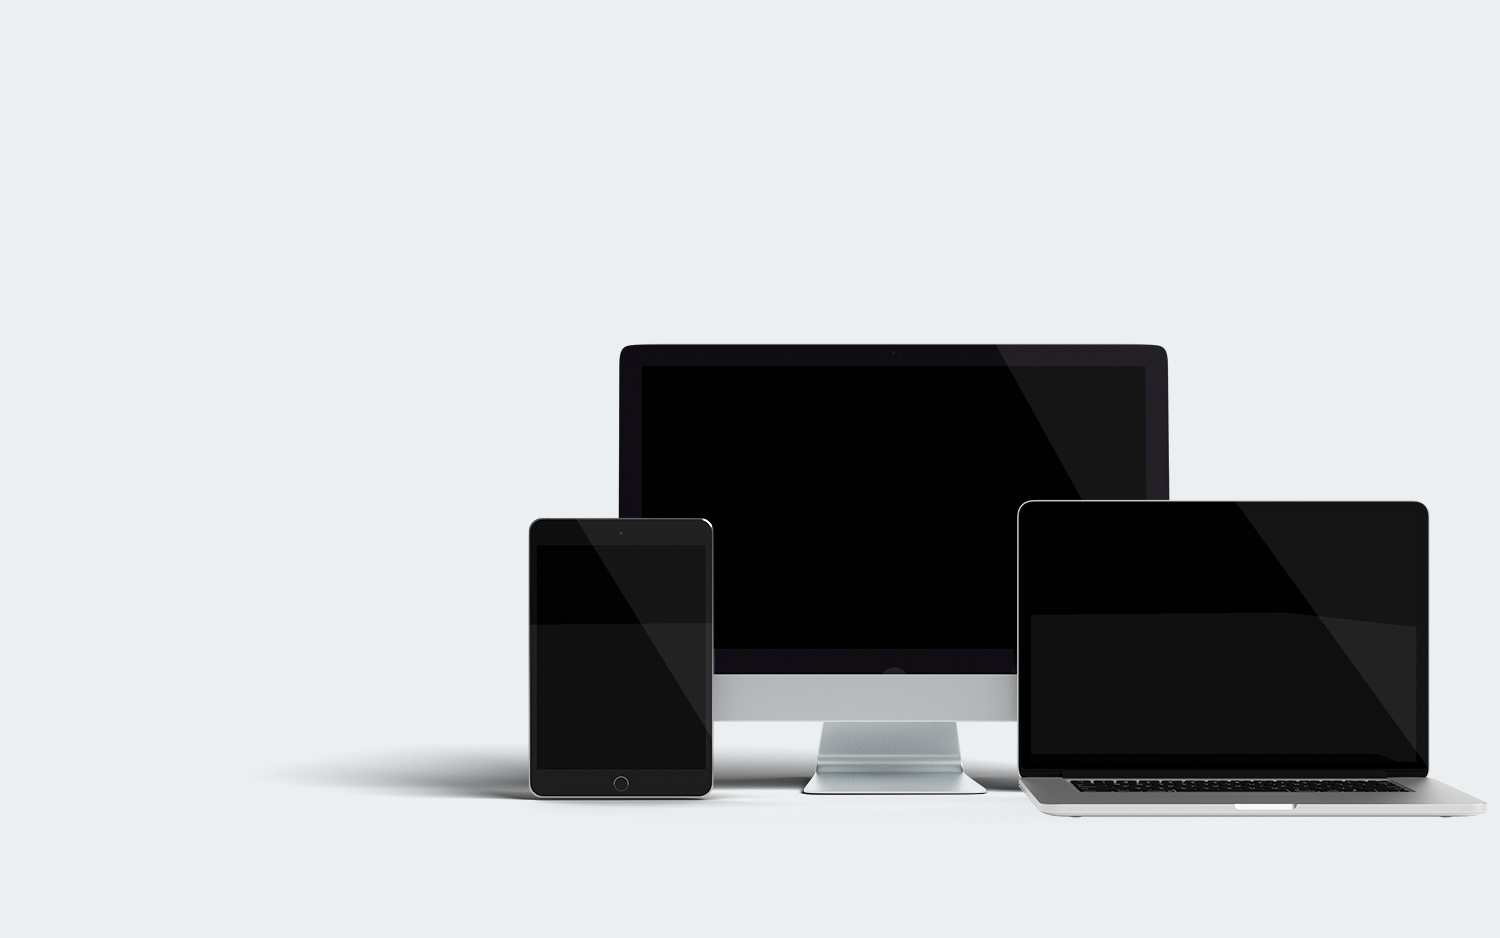 3 Devices Mockup